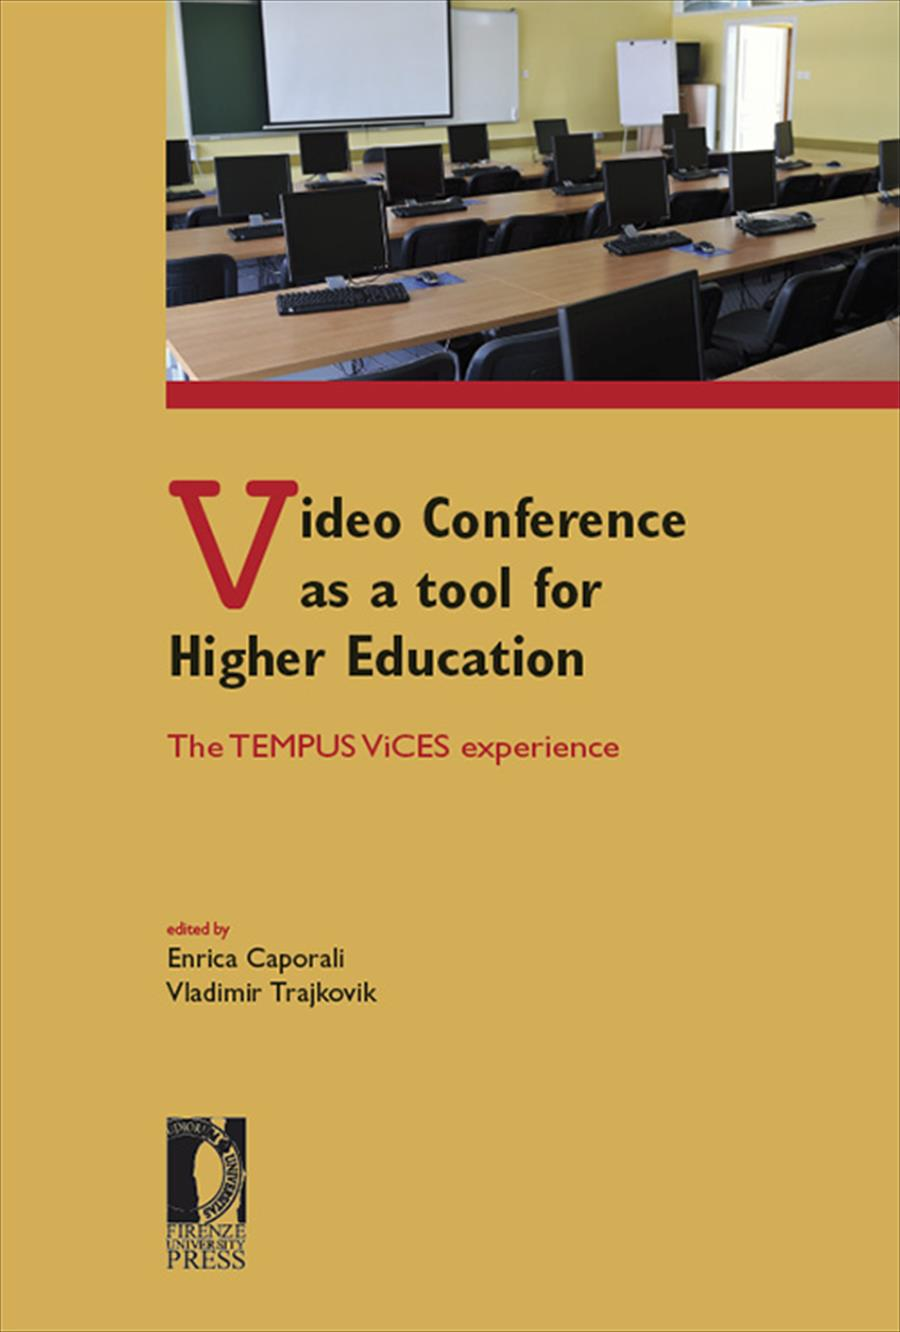 Video Conference as a tool for Higher Education